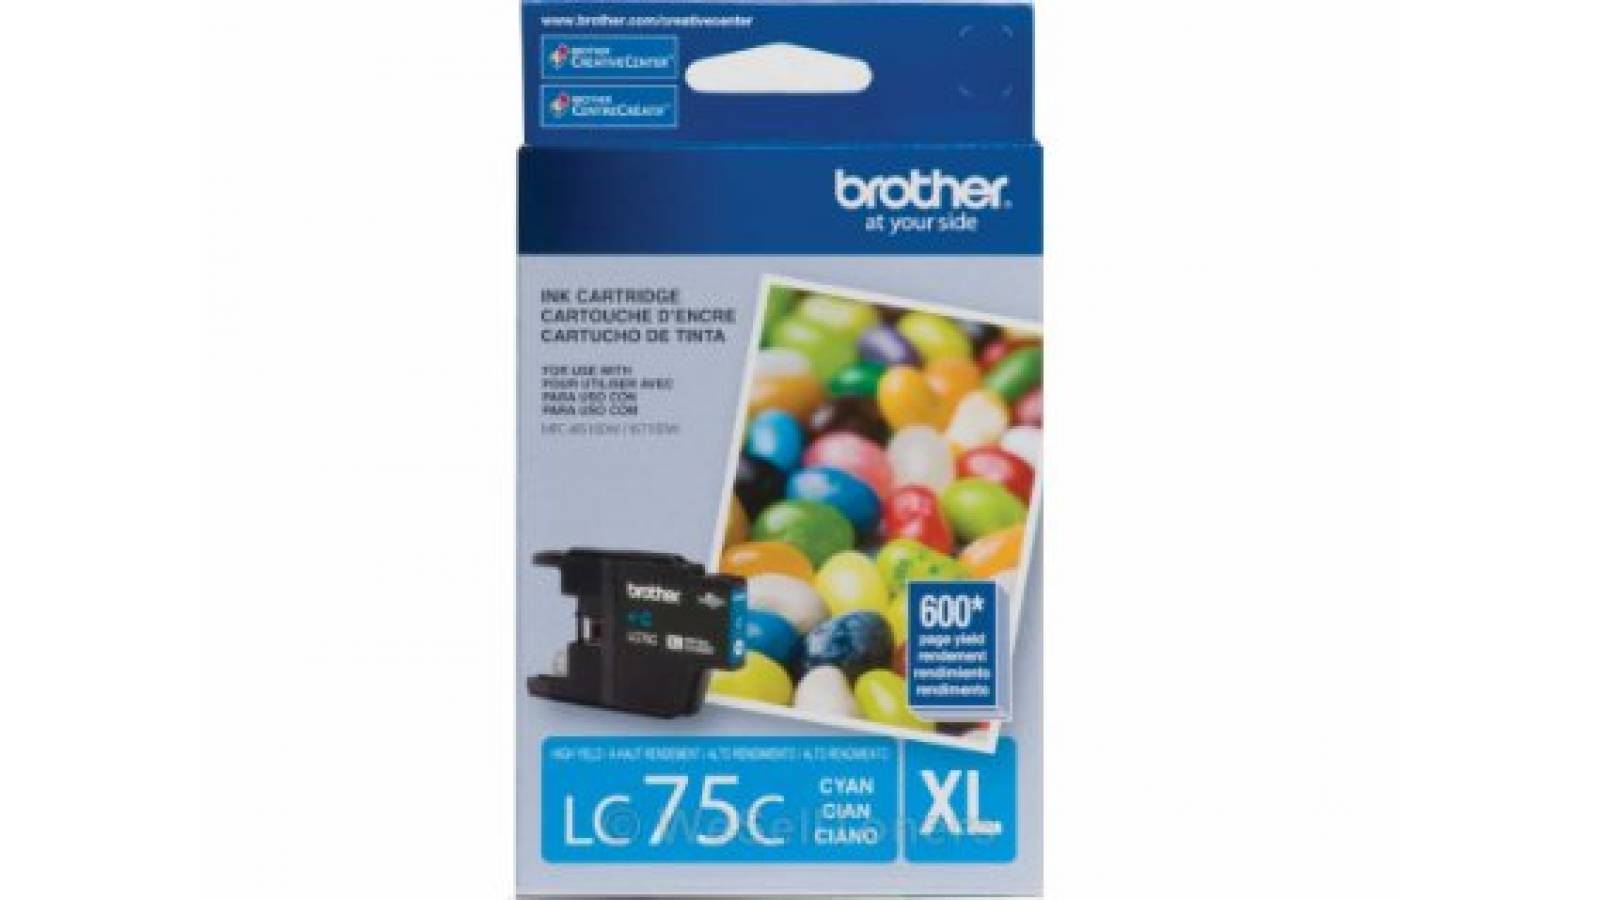 Cartucho de tinta Brother LC-75C